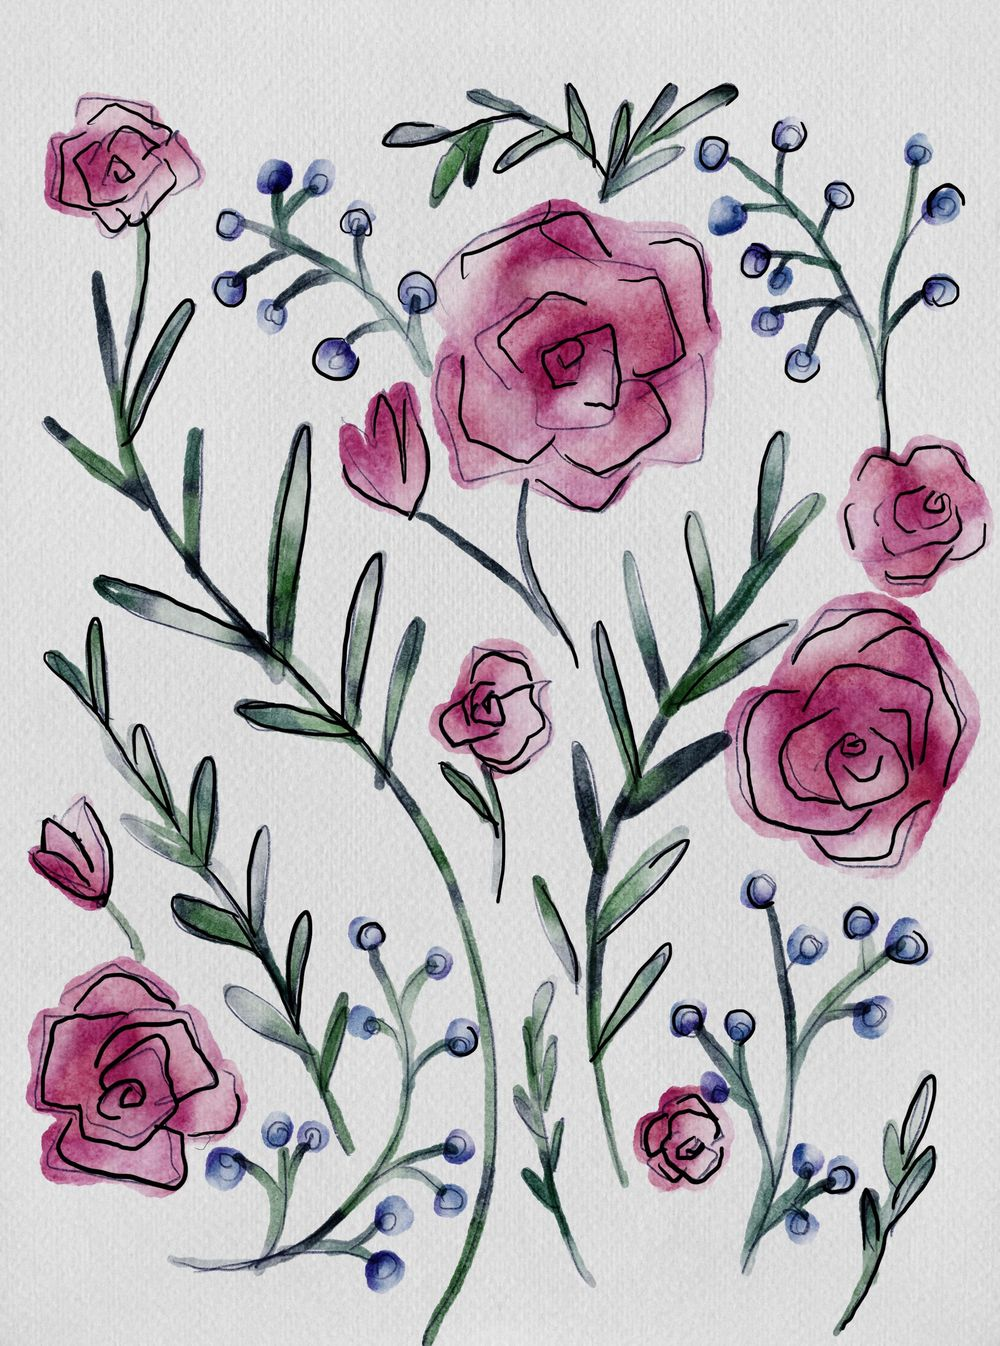 Spring floral watercolor - image 1 - student project